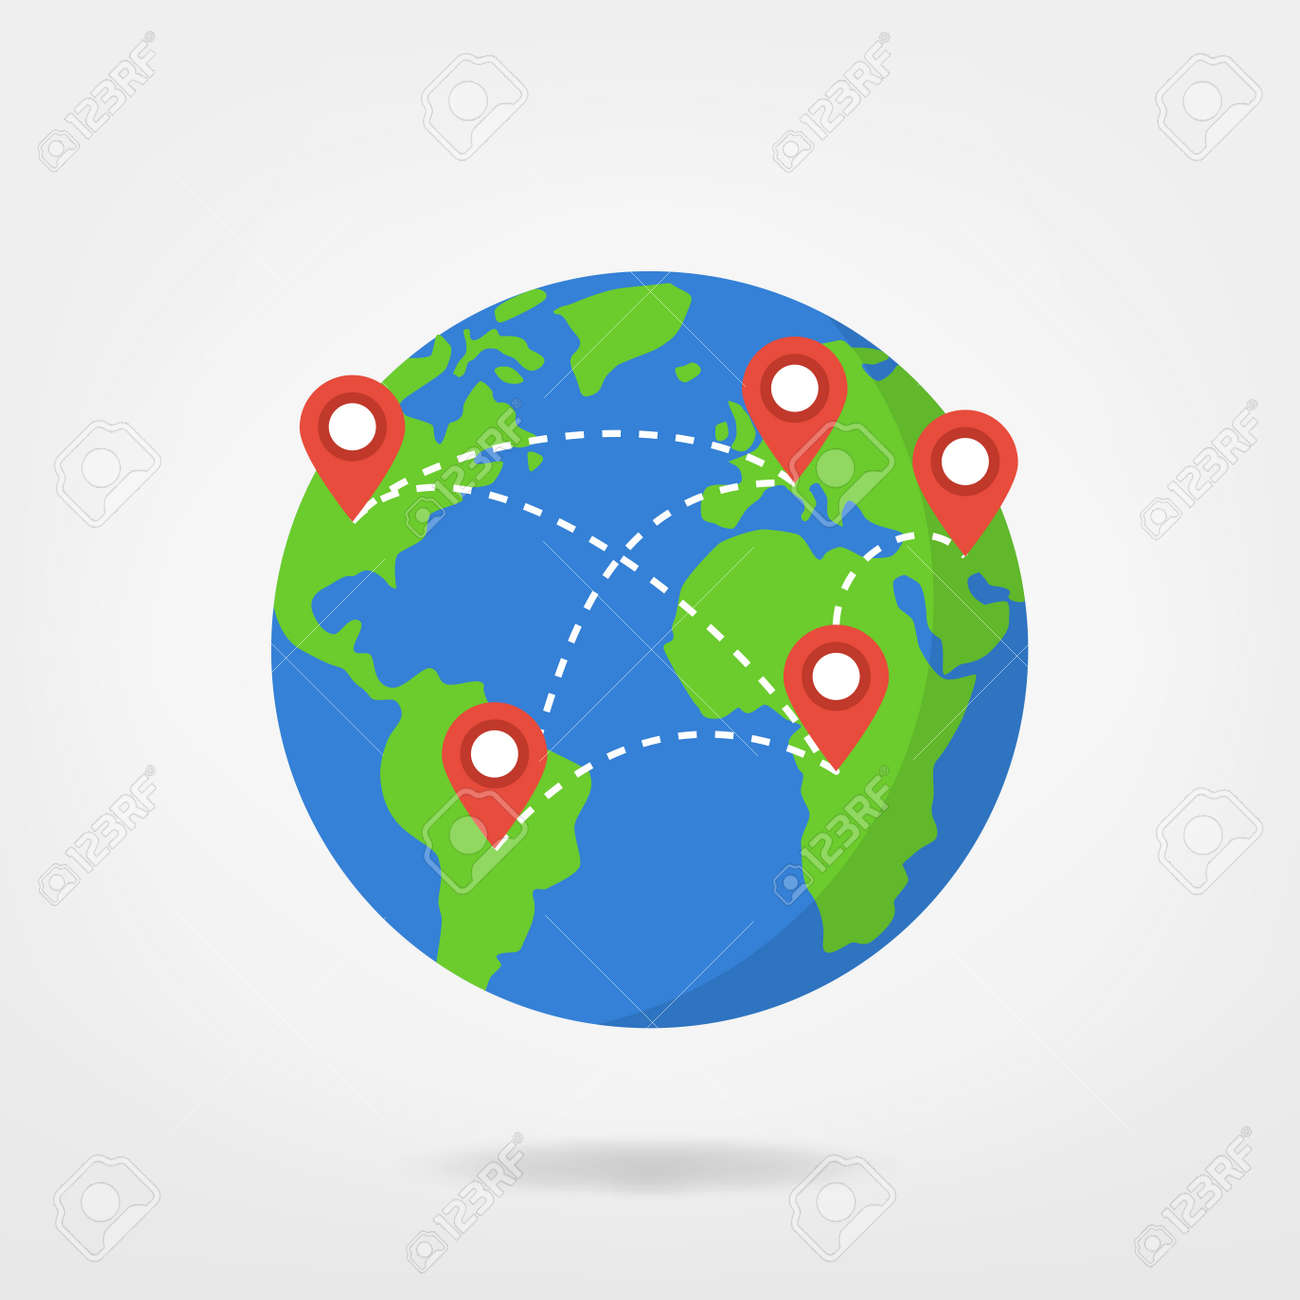 Pin Points On World Map Travel Concept Illustration Location